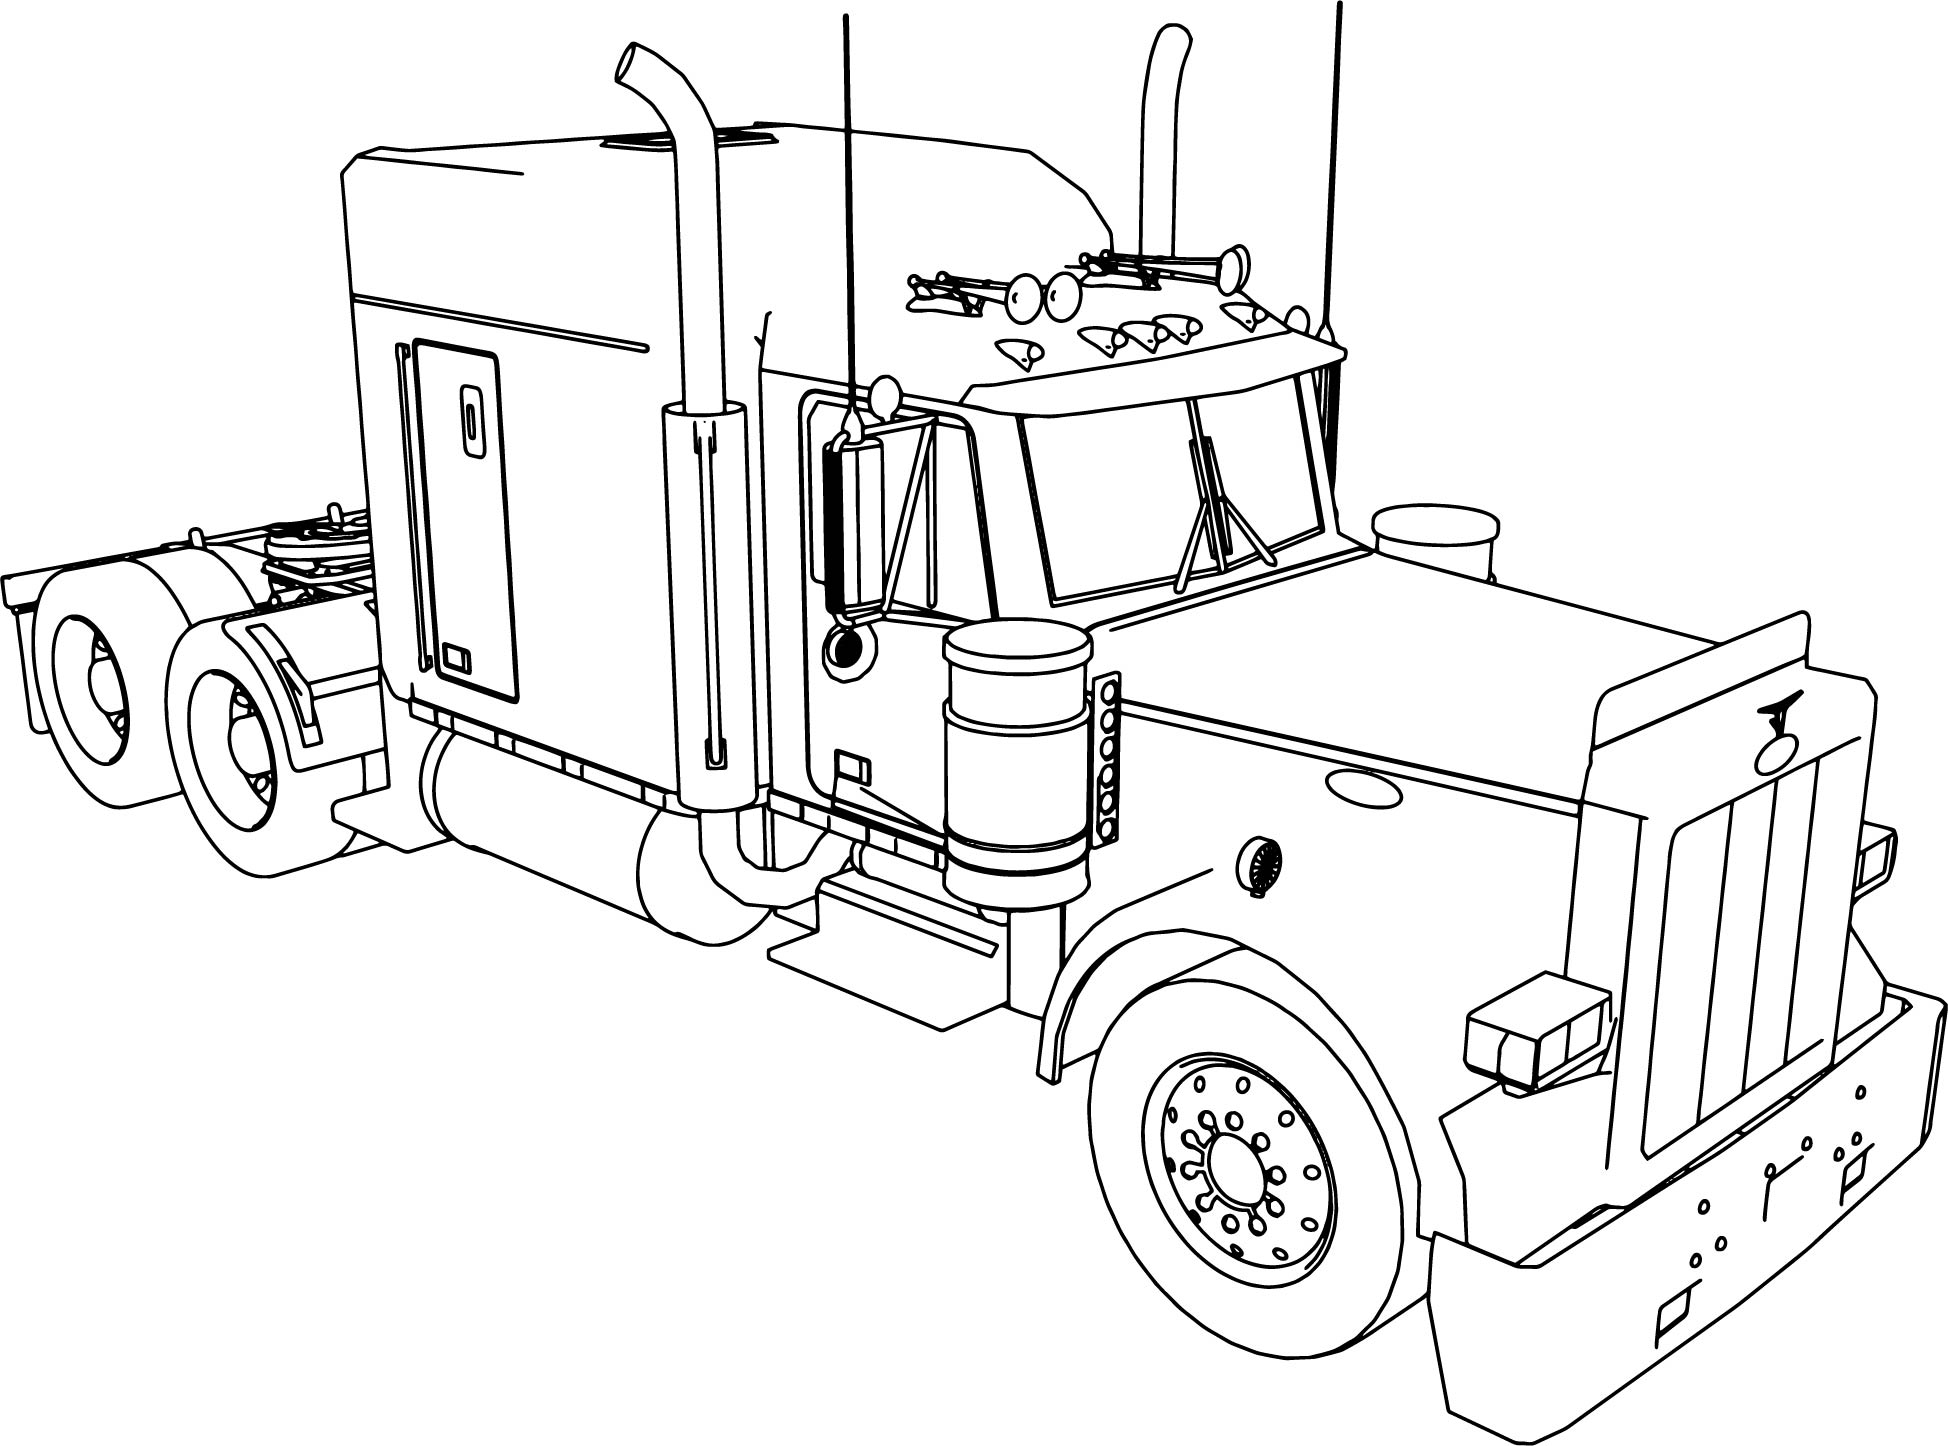 Old truck drawing at getdrawings free for personal use old old truck drawing 8 old truck